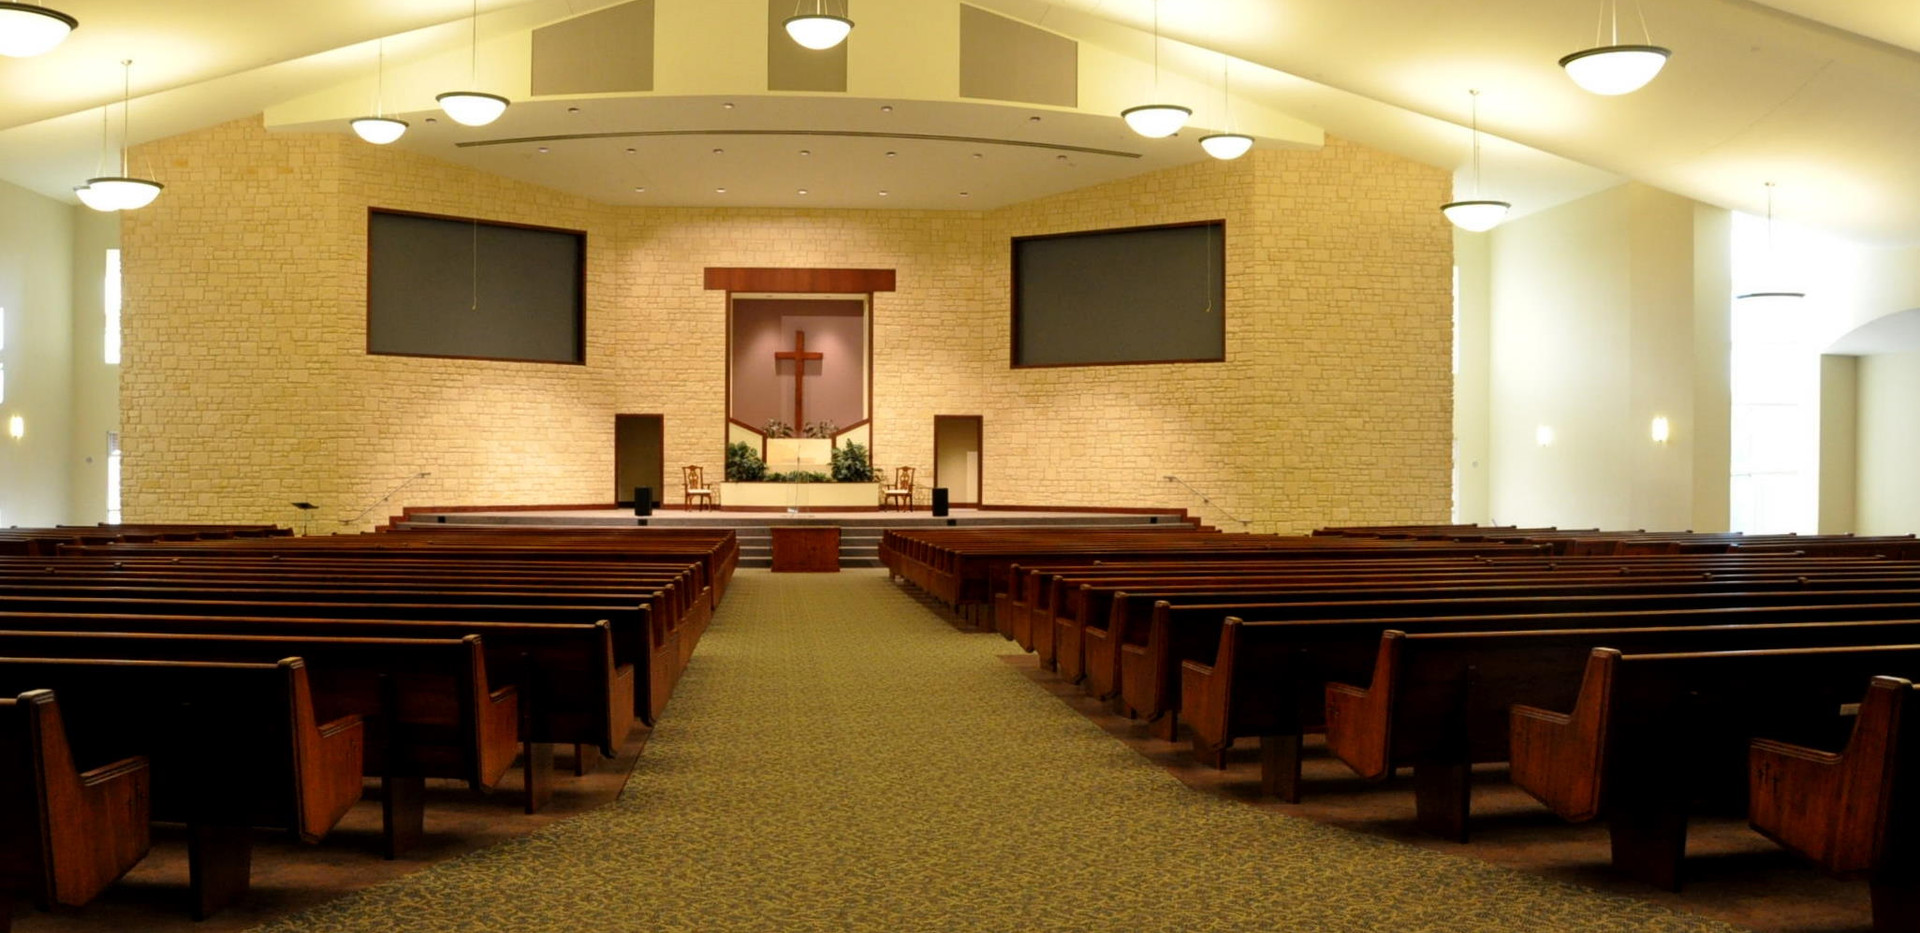 Legacy Church of Christ & Youth Benevolence Center | Frank Dale Construction